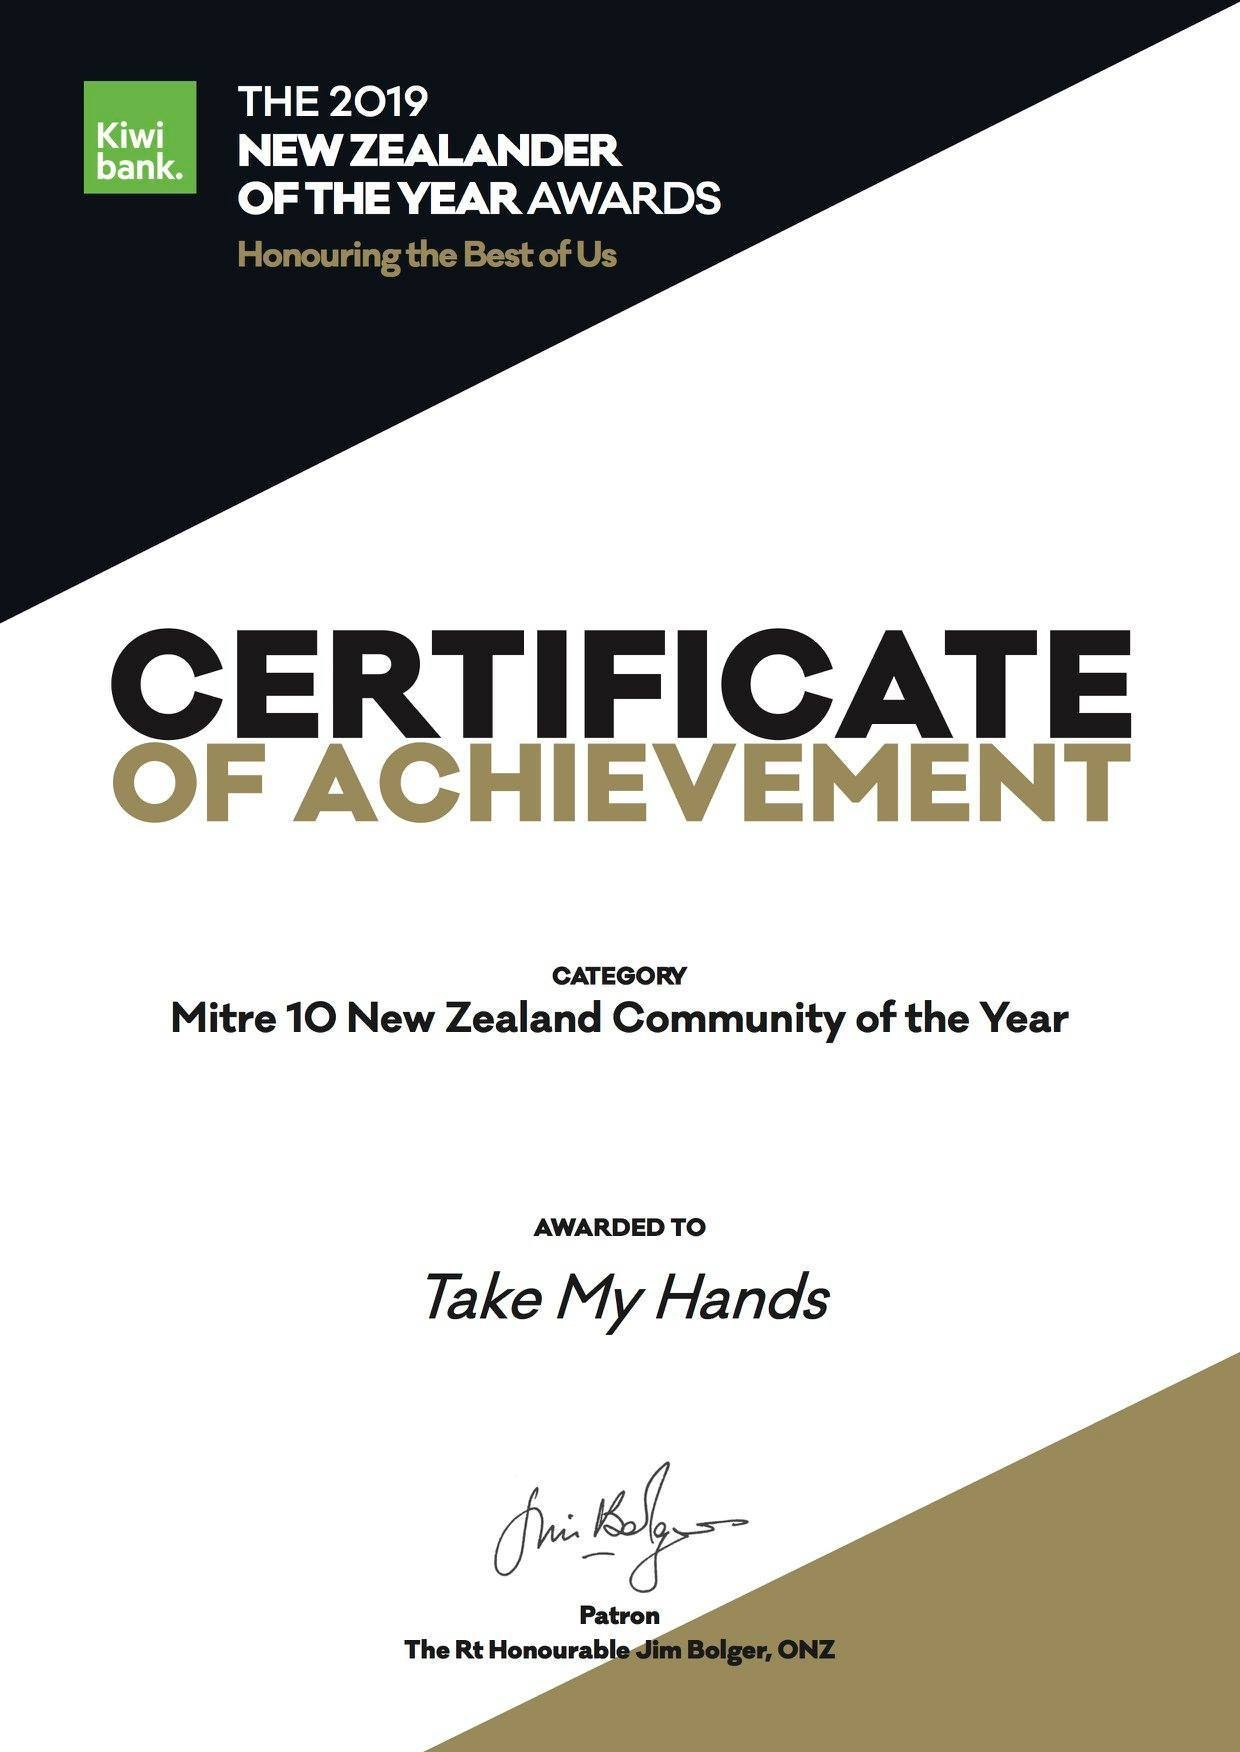 new-zealander-of-the-year-award-1195065686-1551395676357.jpg